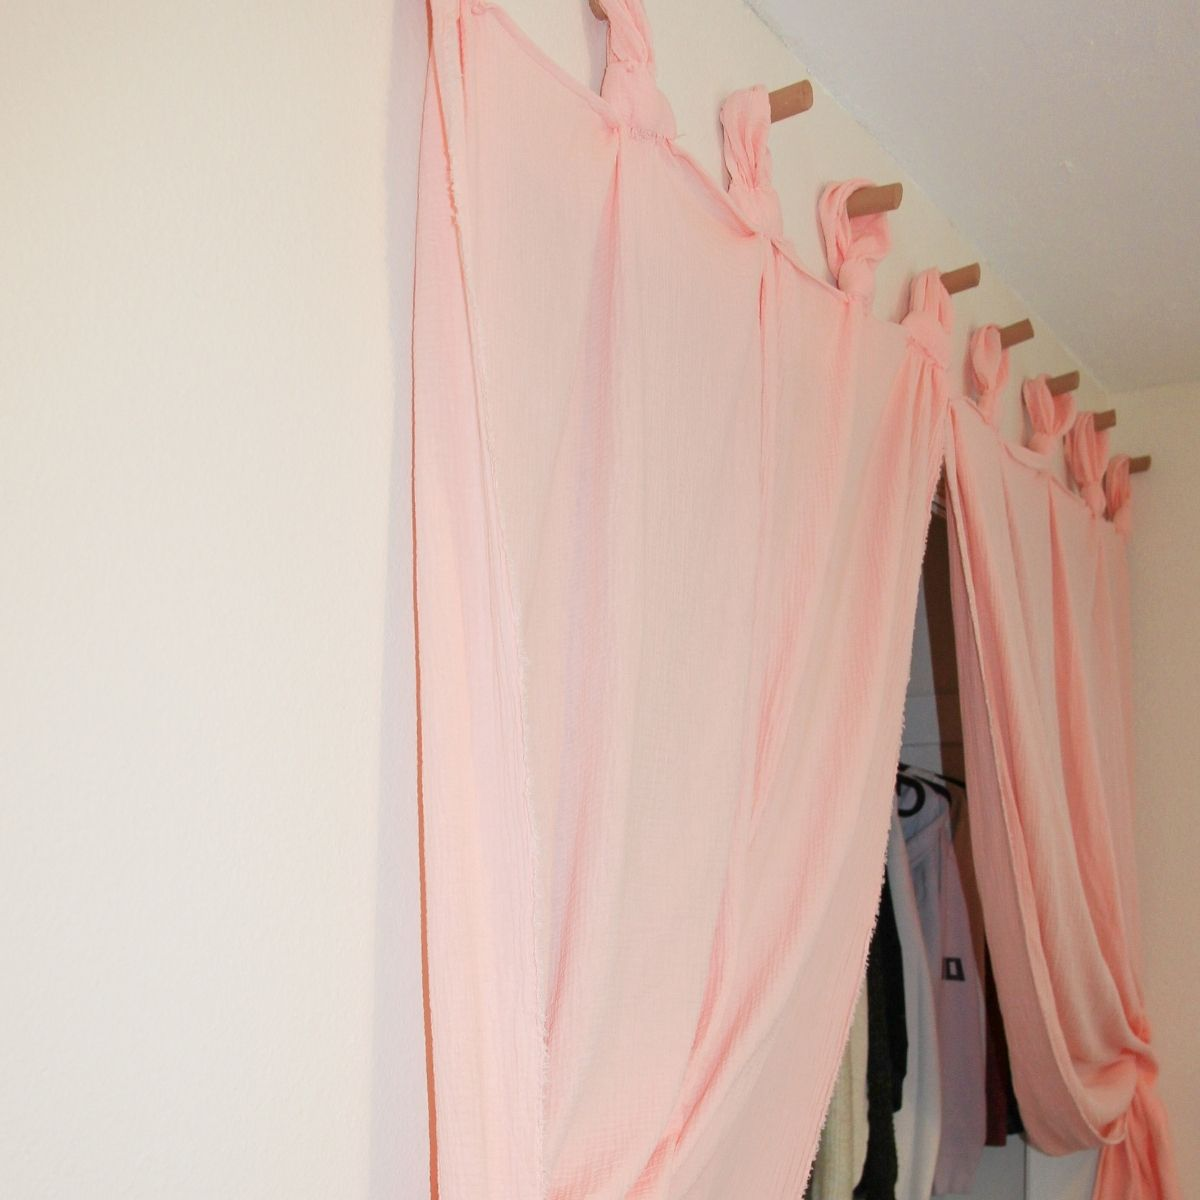 anthropologie inspired curtains hanging on dowel rods